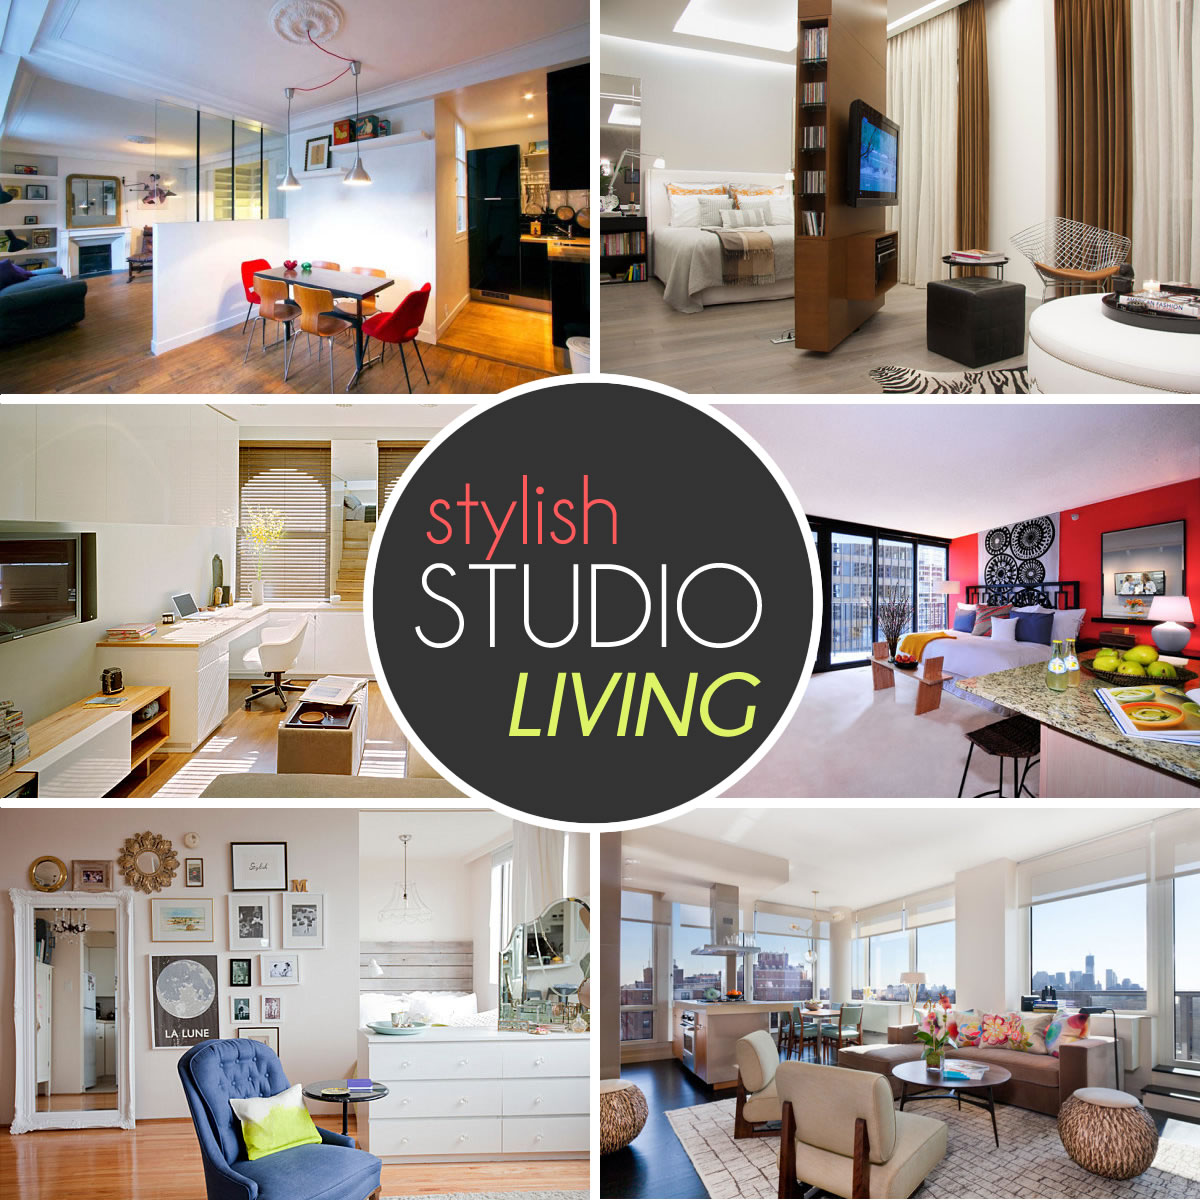 The design lover 39 s guide to stylish studio living for The family room design studio